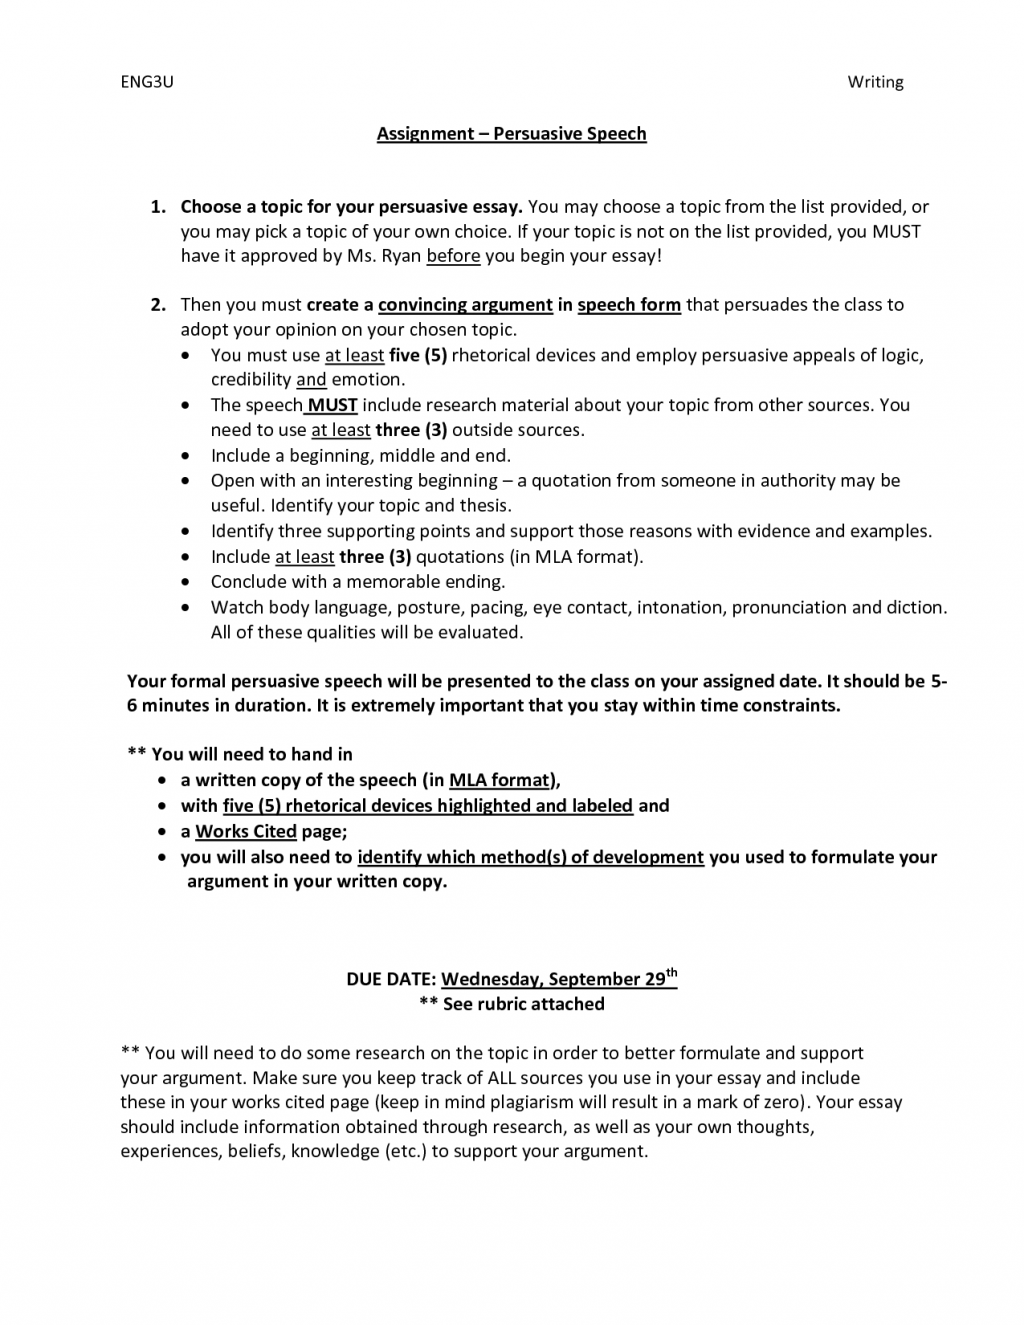 014 Research Paper For Sale Apa Dott Ssa Claudia Gambarino Paying College20hletes Essay Icqsdqifqe Topics Argumentative Against20 Fascinating On Sales Promotion Strategies Salem Witch Trials And Distribution Management Full